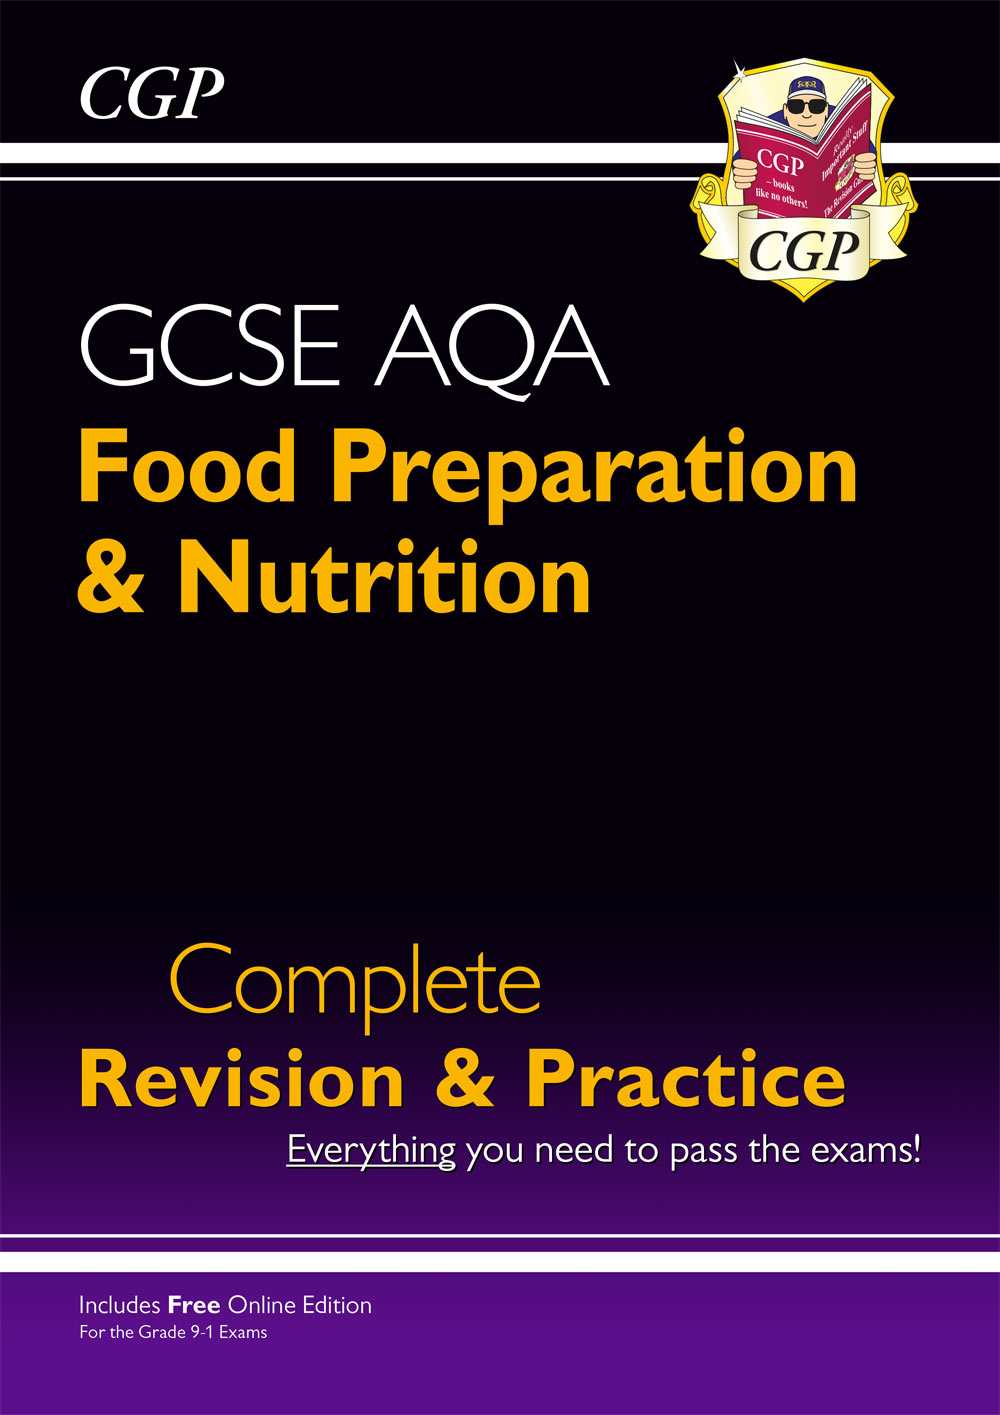 FNAS41 - New 9-1 GCSE Food Preparation & Nutrition AQA Complete Revision & Practice (with Online Edn